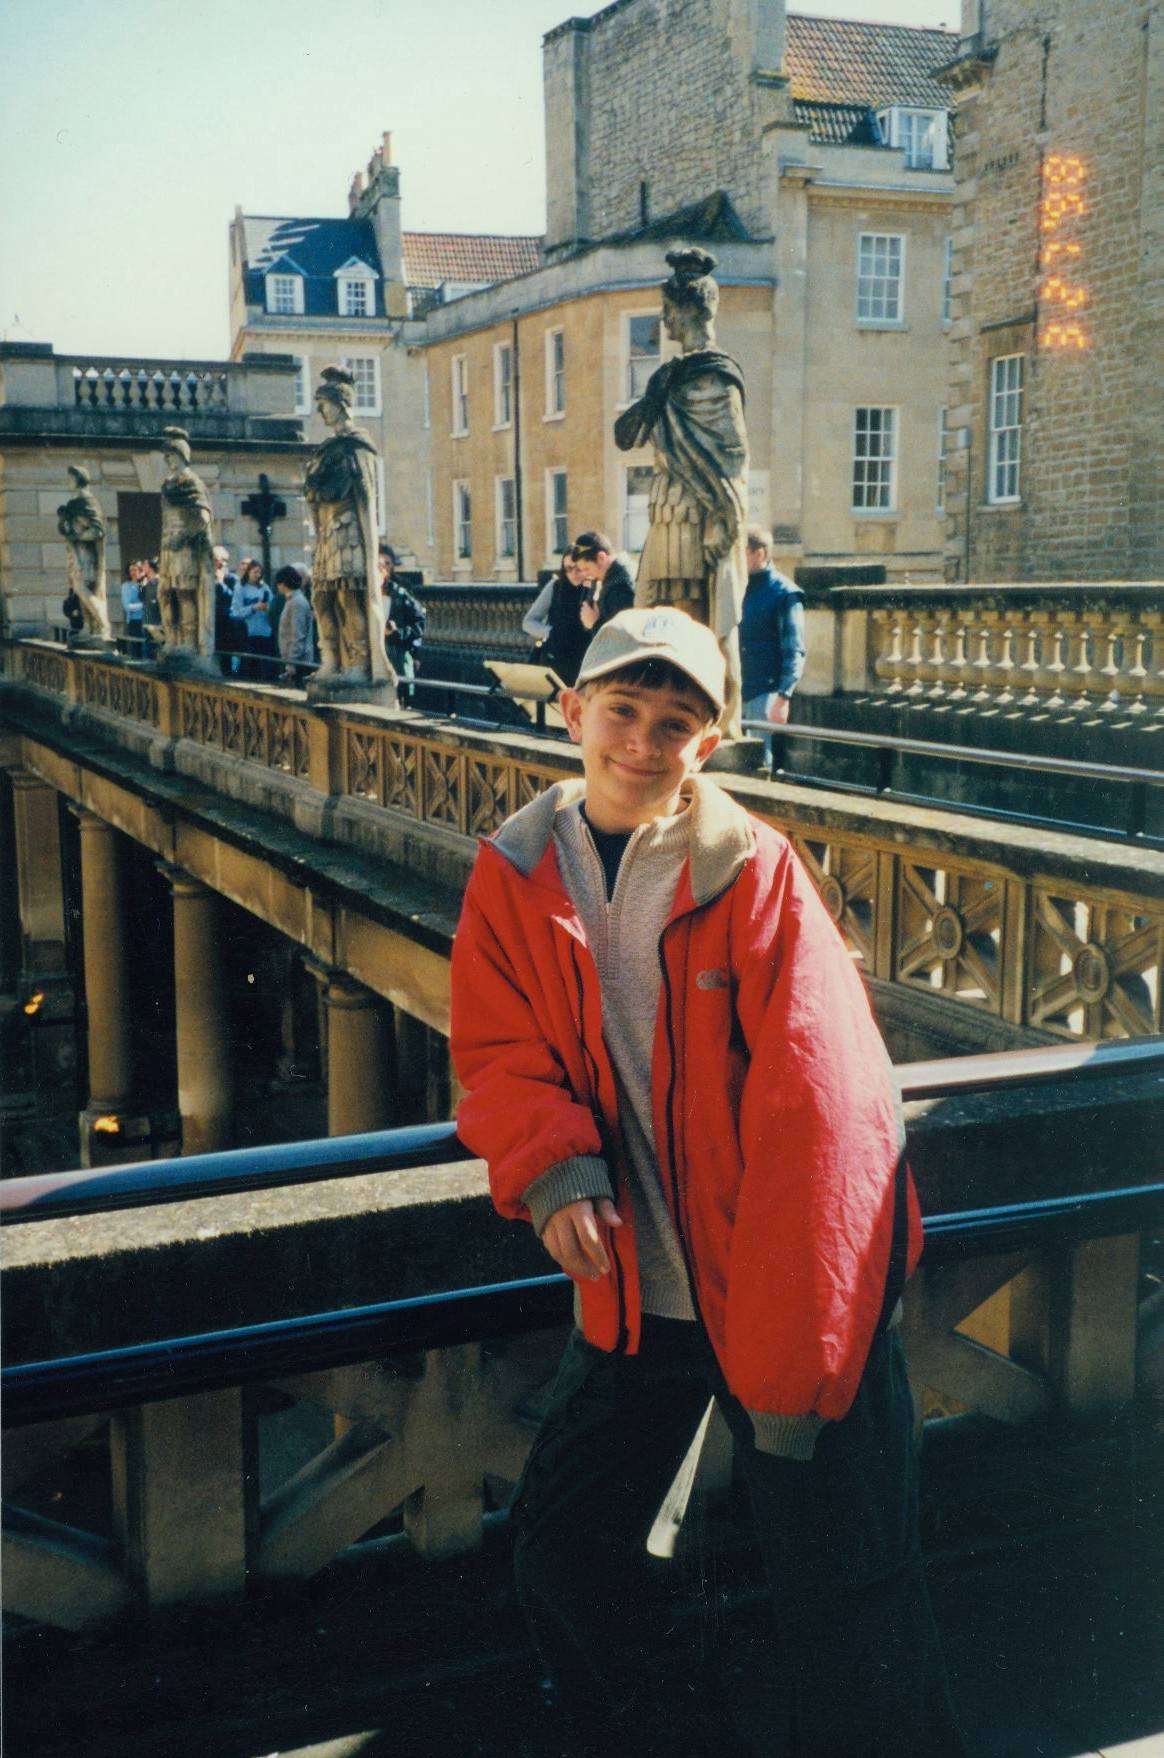 Visiting Bath, England.